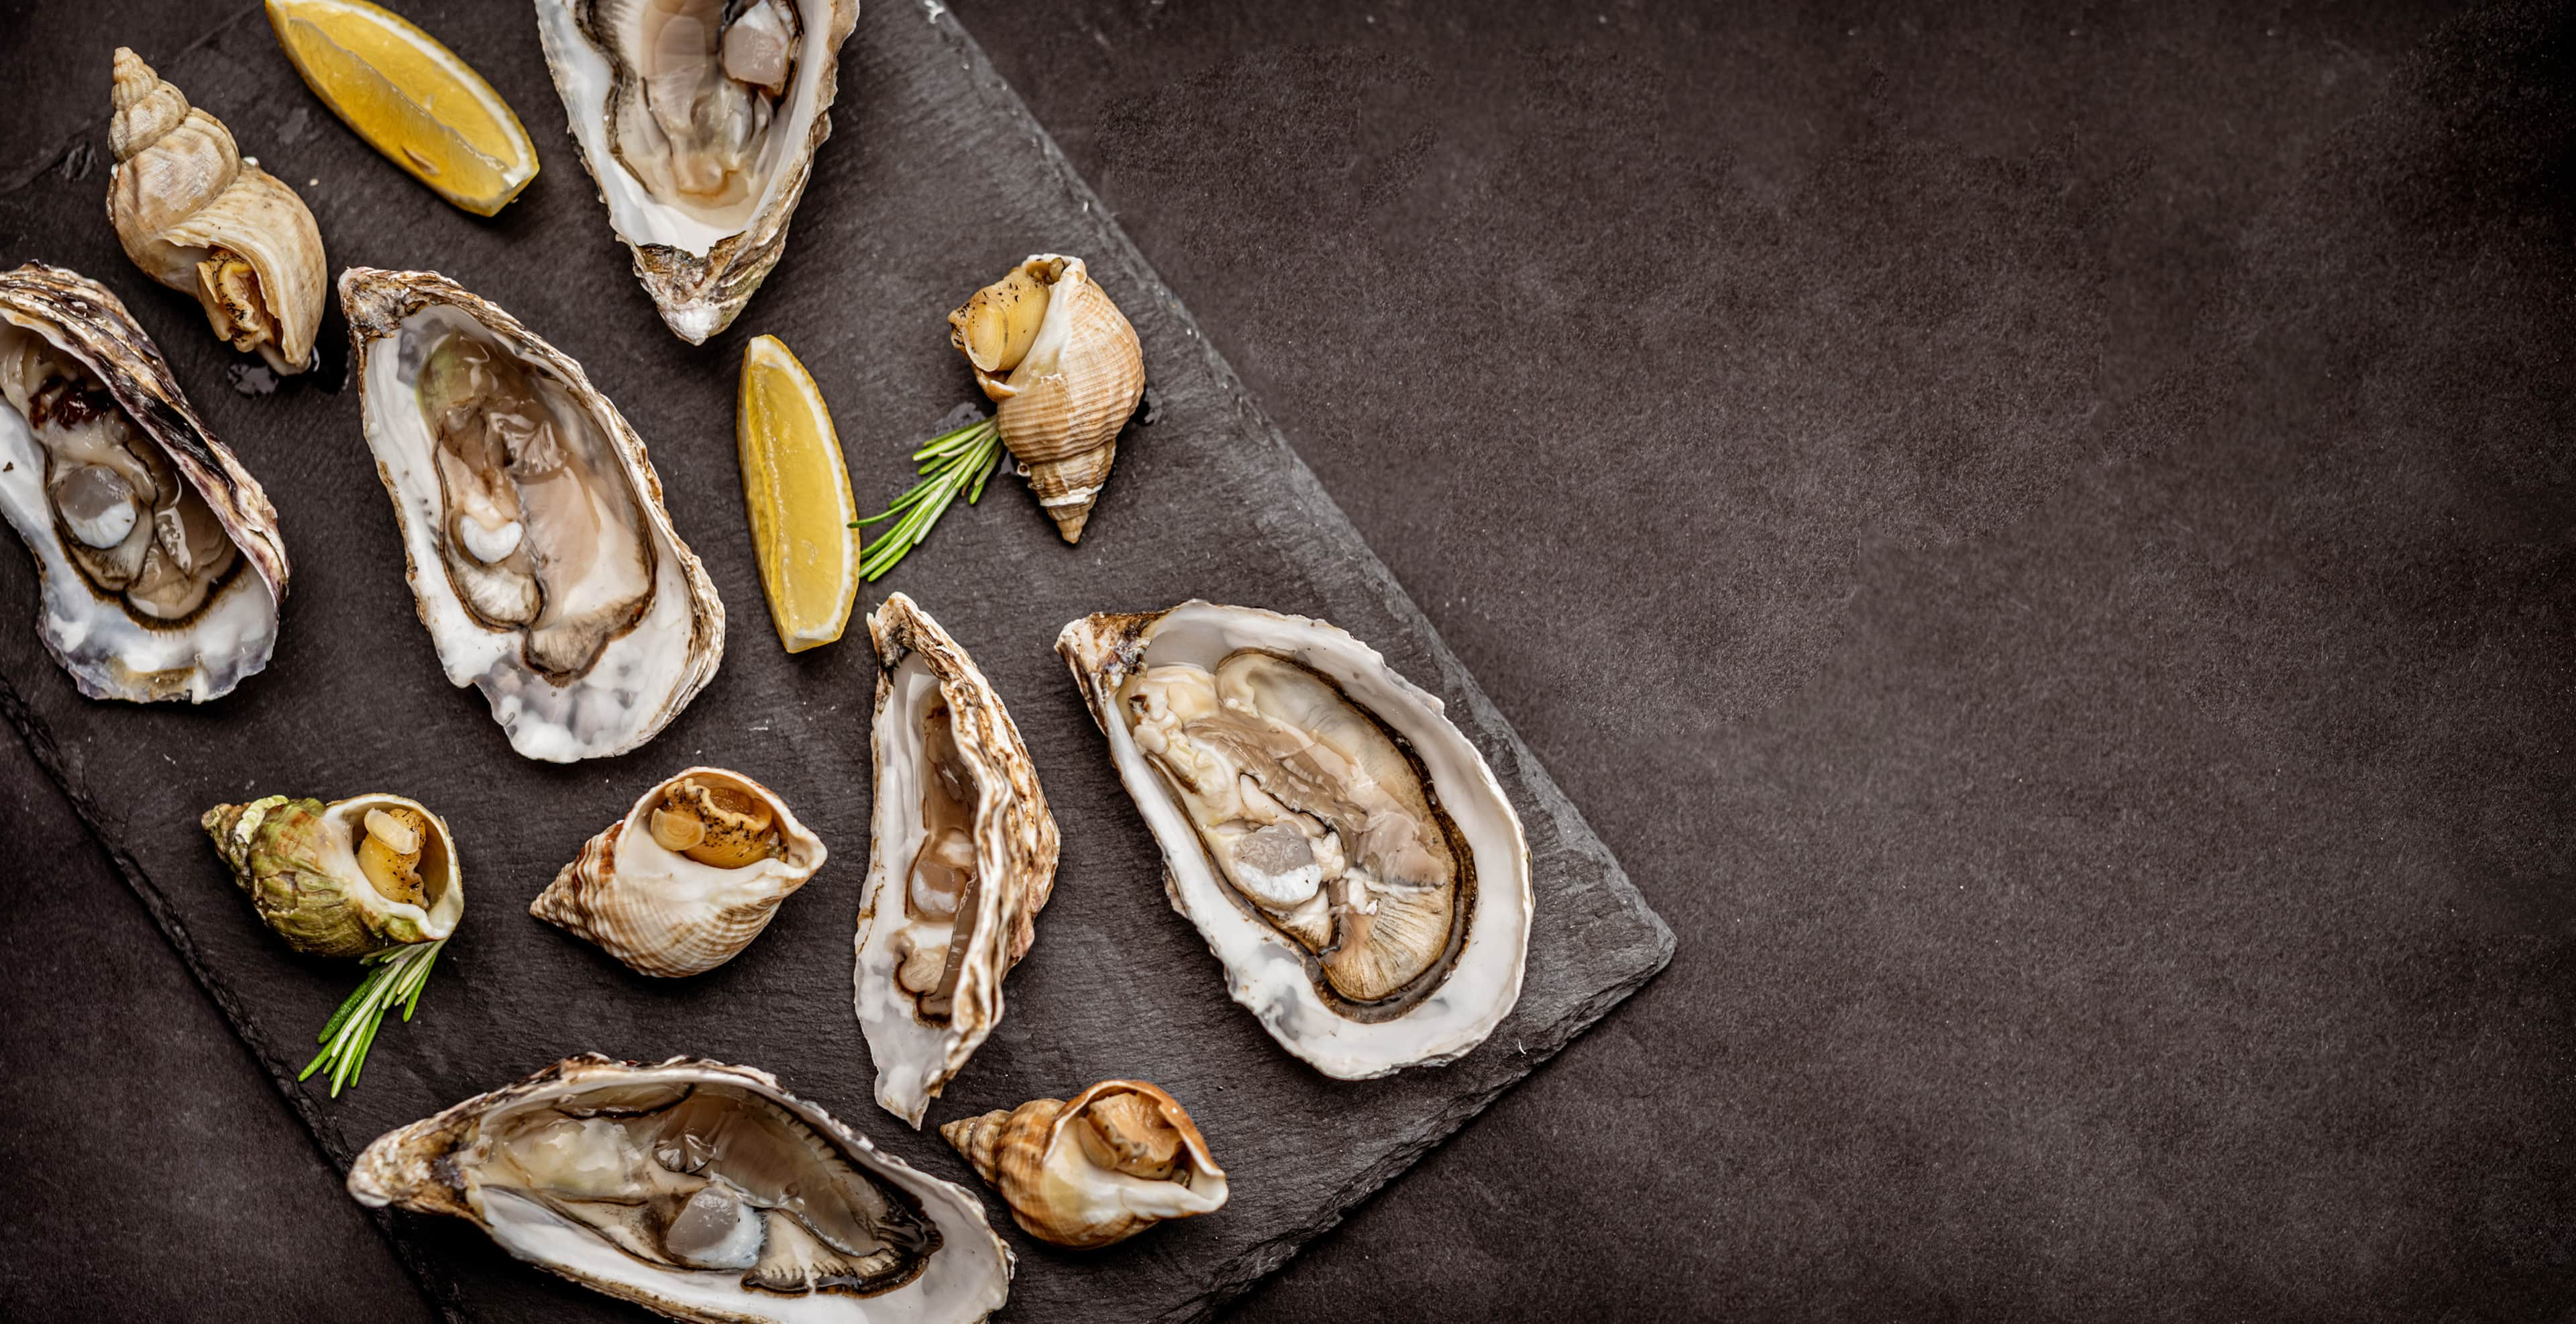 Raw oysters with cooked snails on black platter